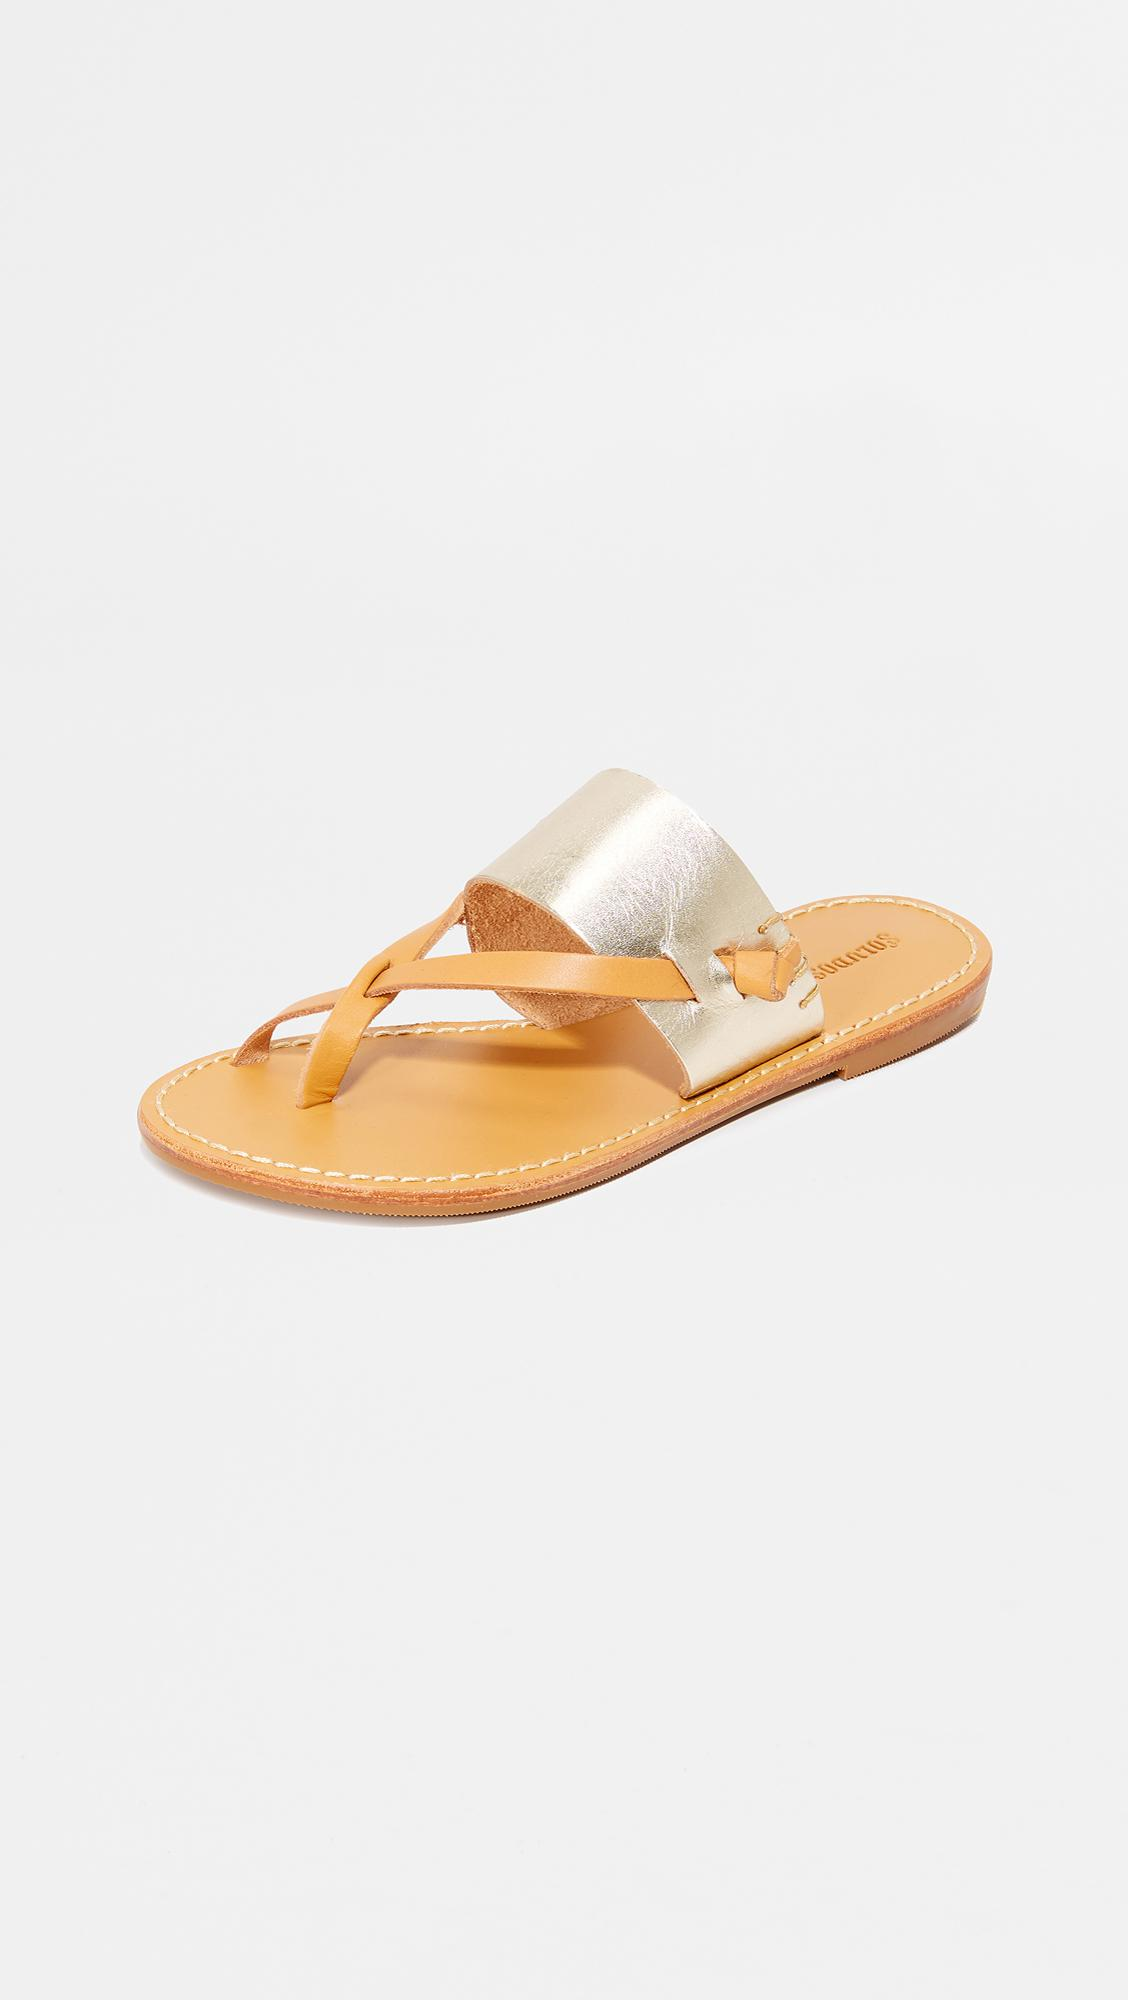 f2db873e1329 Lyst - Soludos Slotted Thong Sandals in Metallic - Save 10%